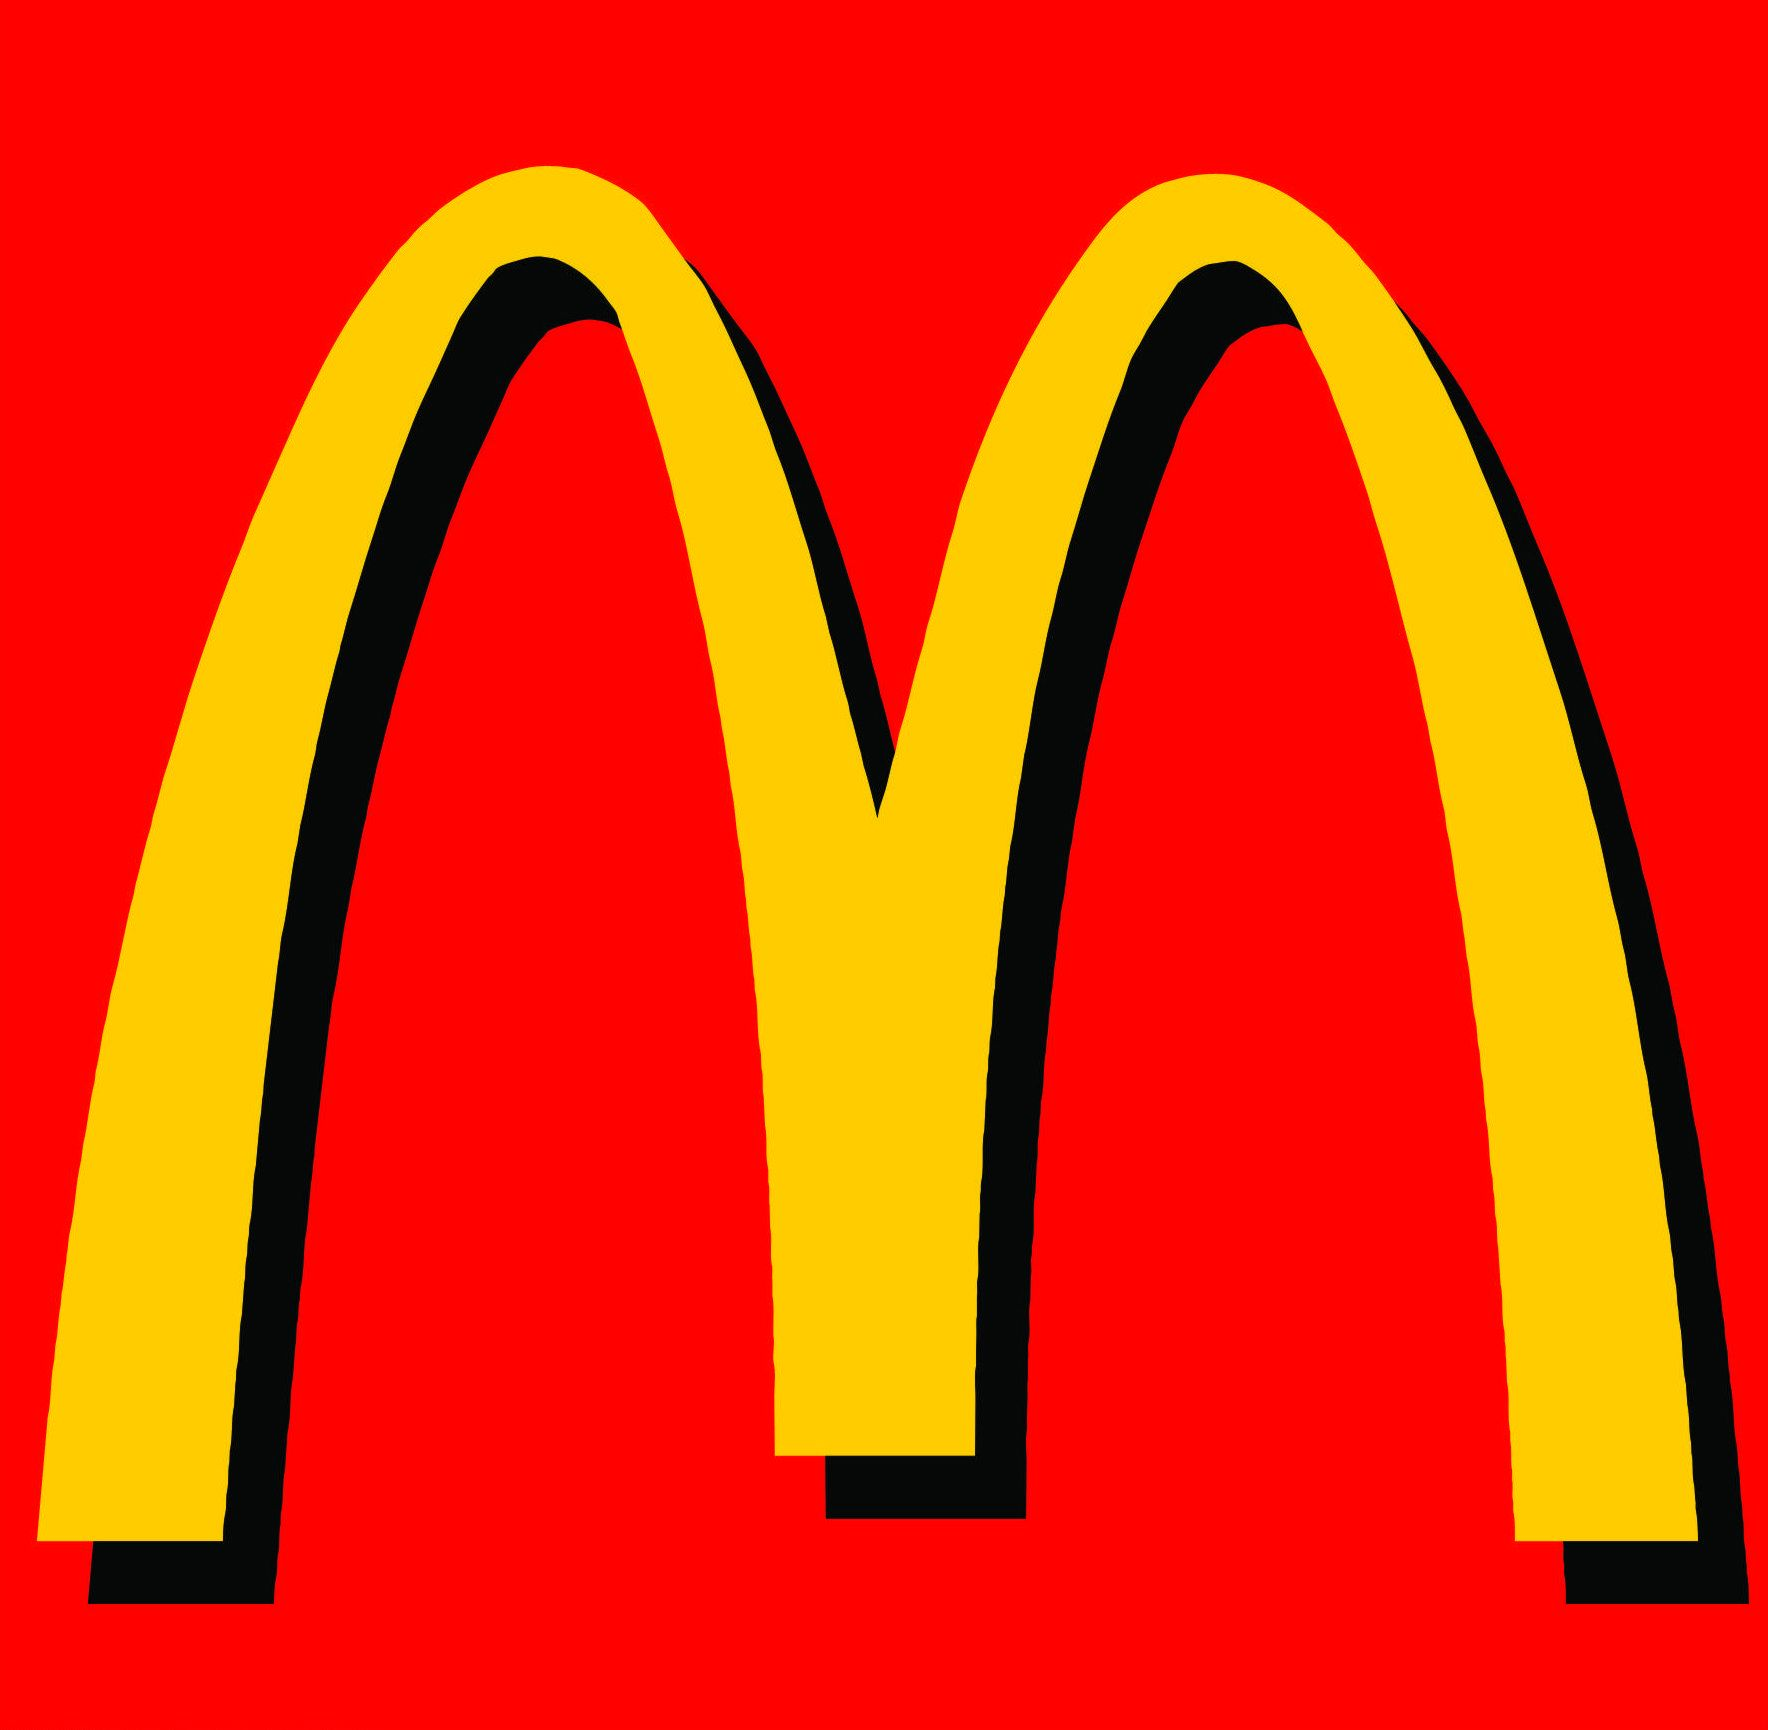 letter never sent mcdonalds logos hd wallpaper images and wallpapers 4208